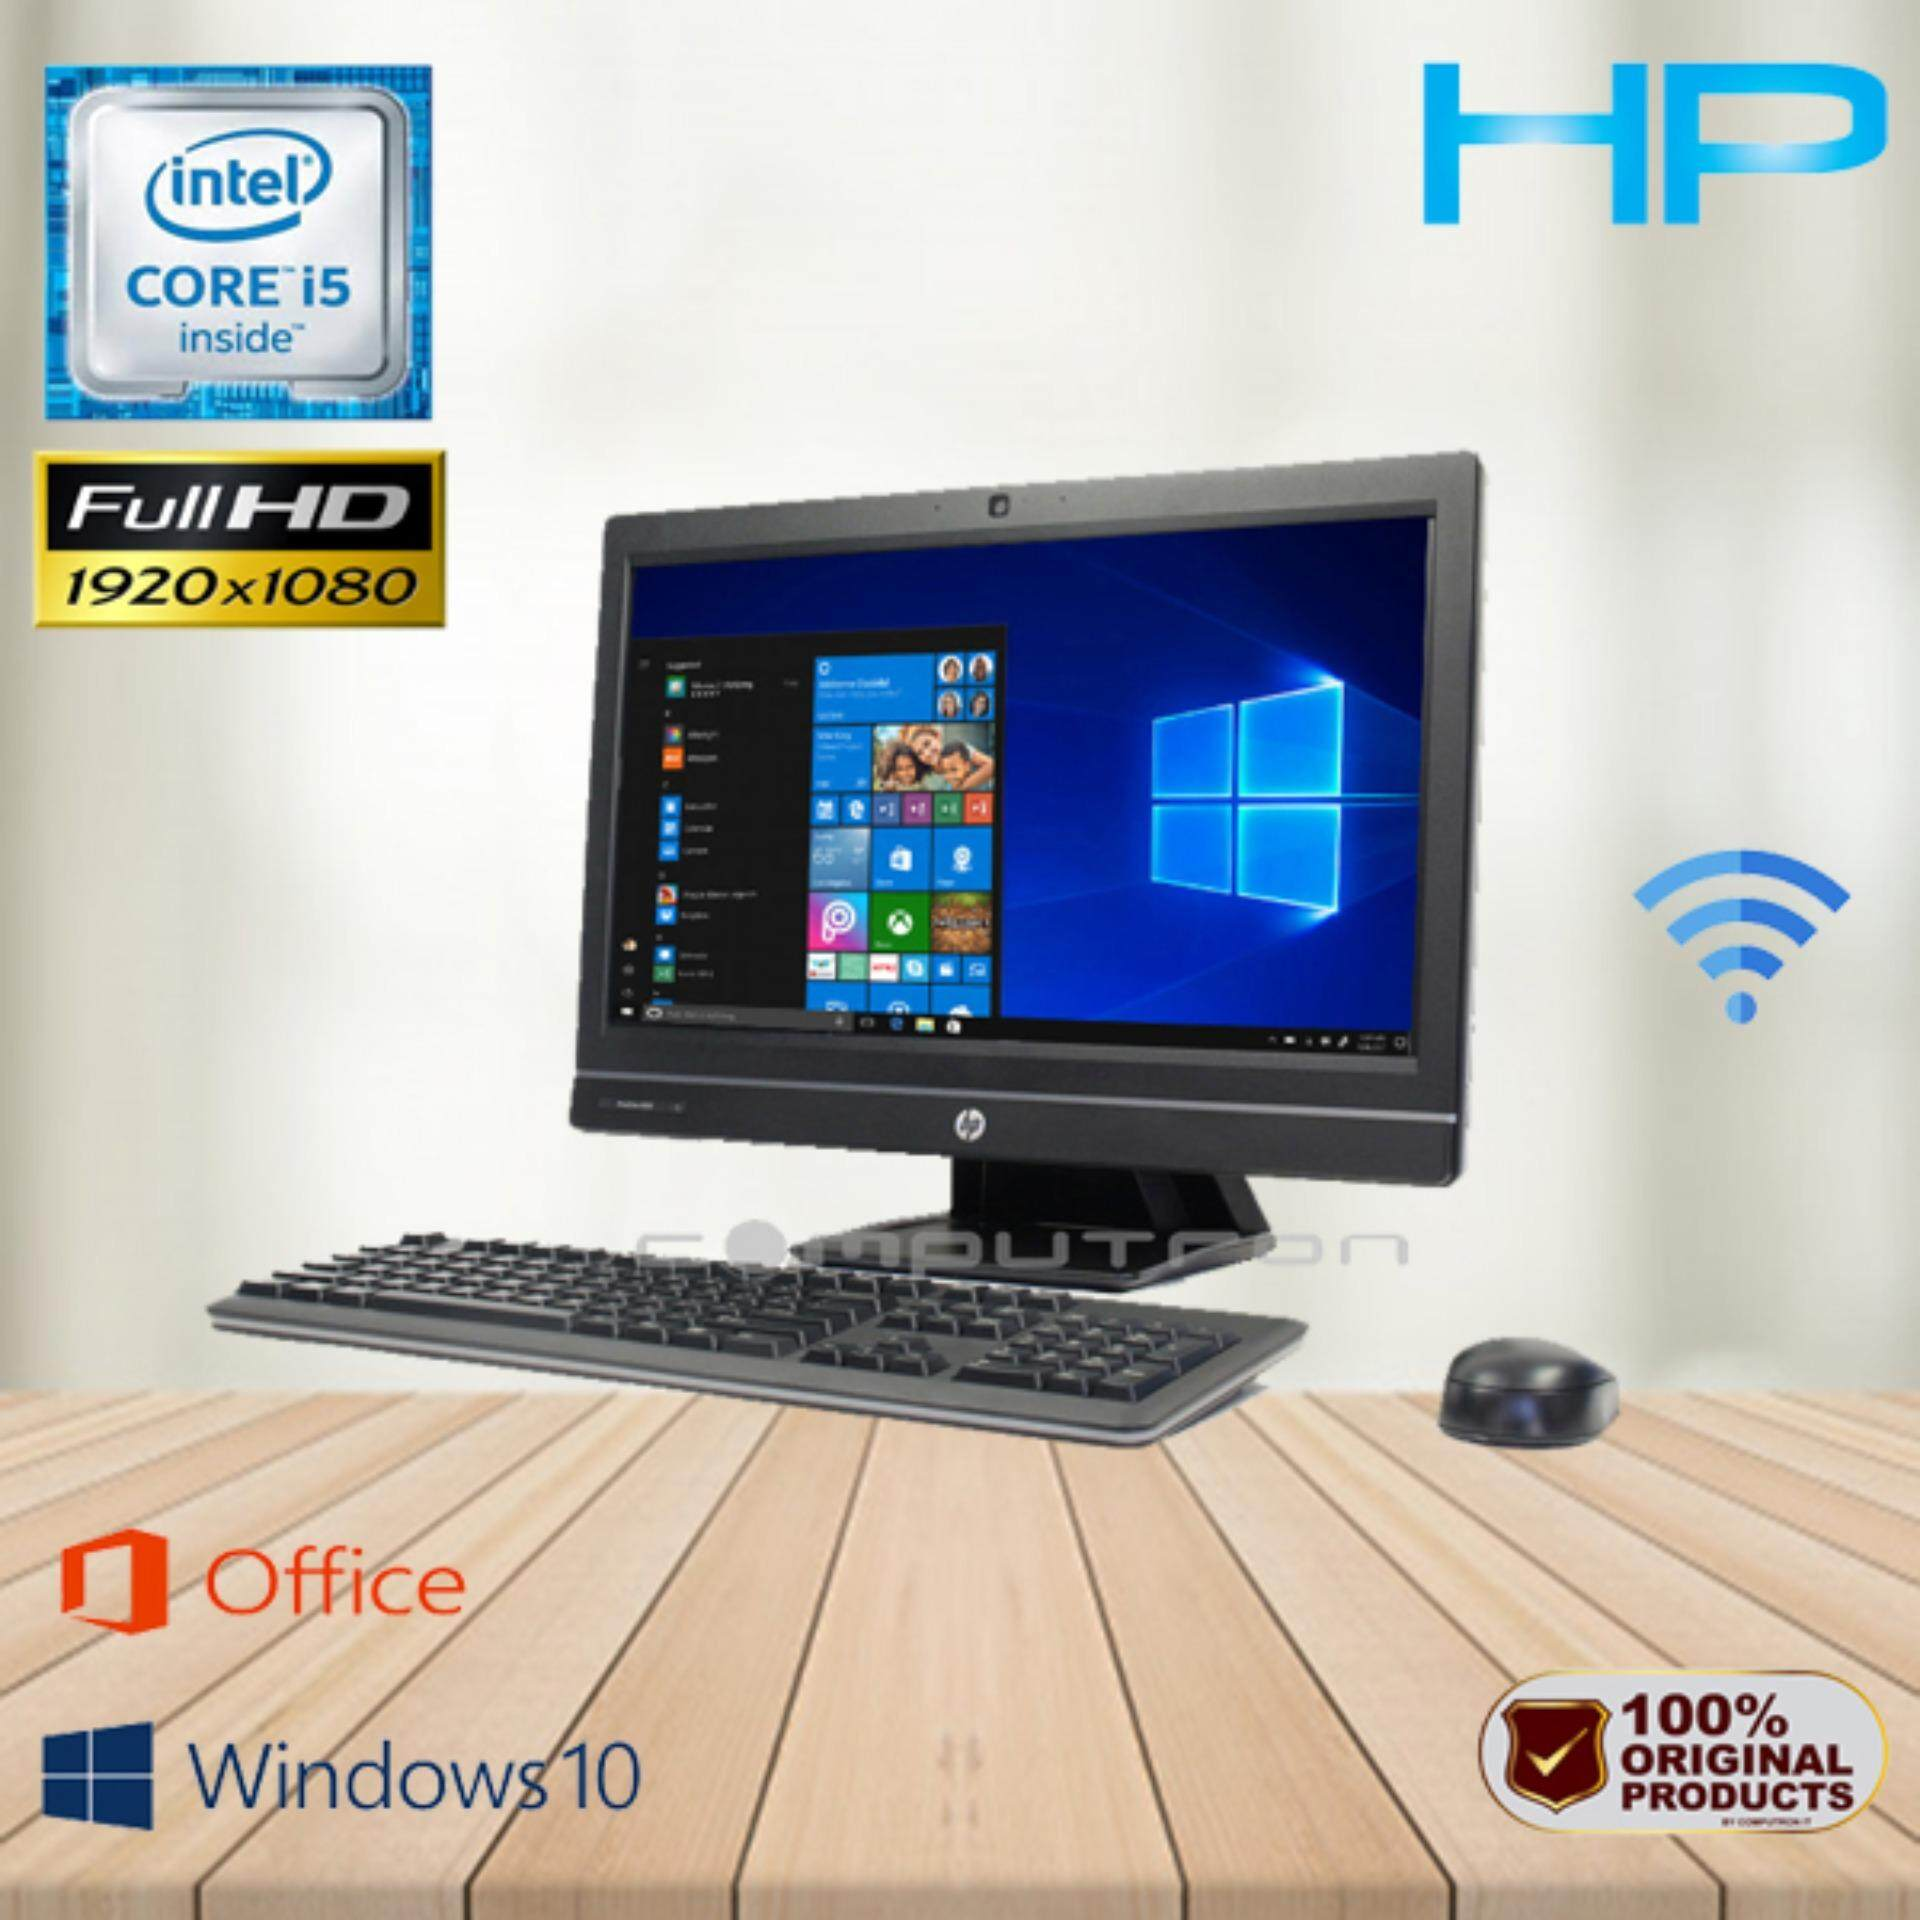 All In One Hp Pro One 600 G1 All In One Pc Desktop 22